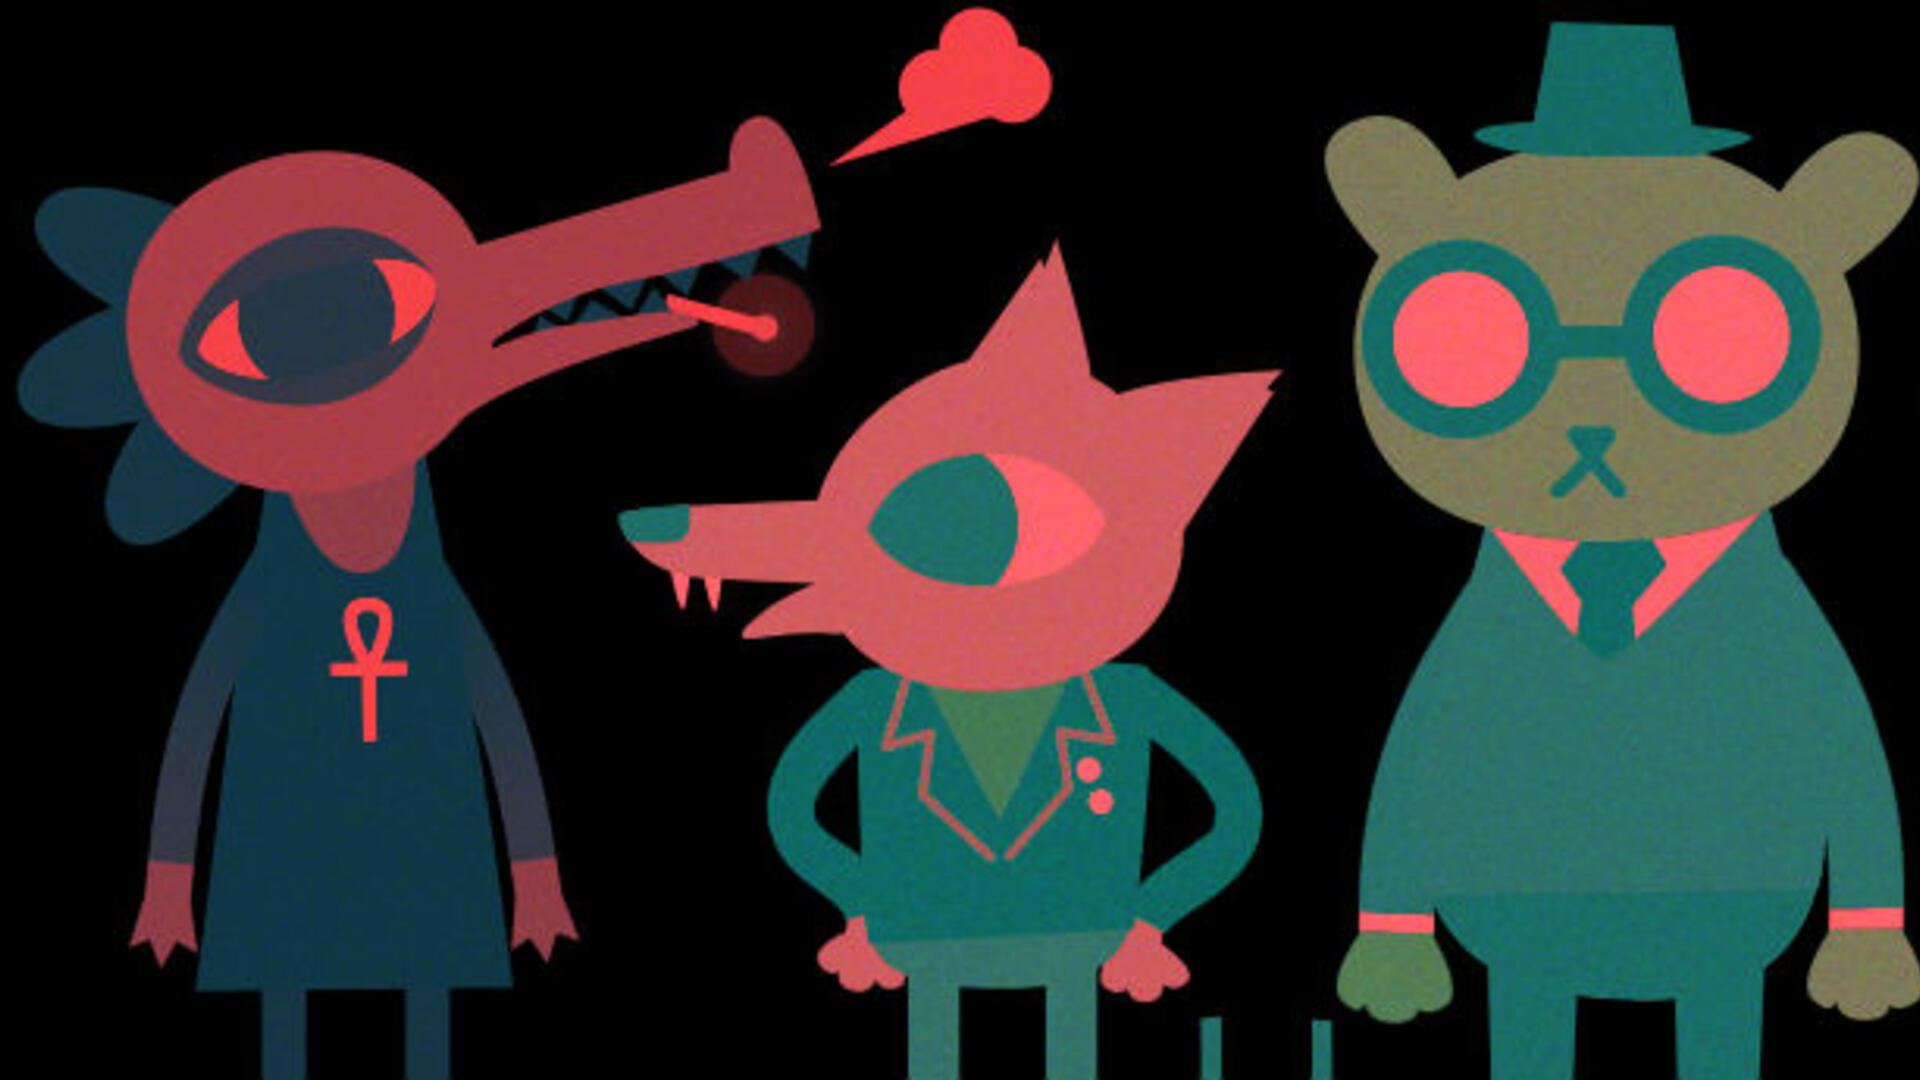 Night In The Woods Scariest Monster Is The War Between Boomers